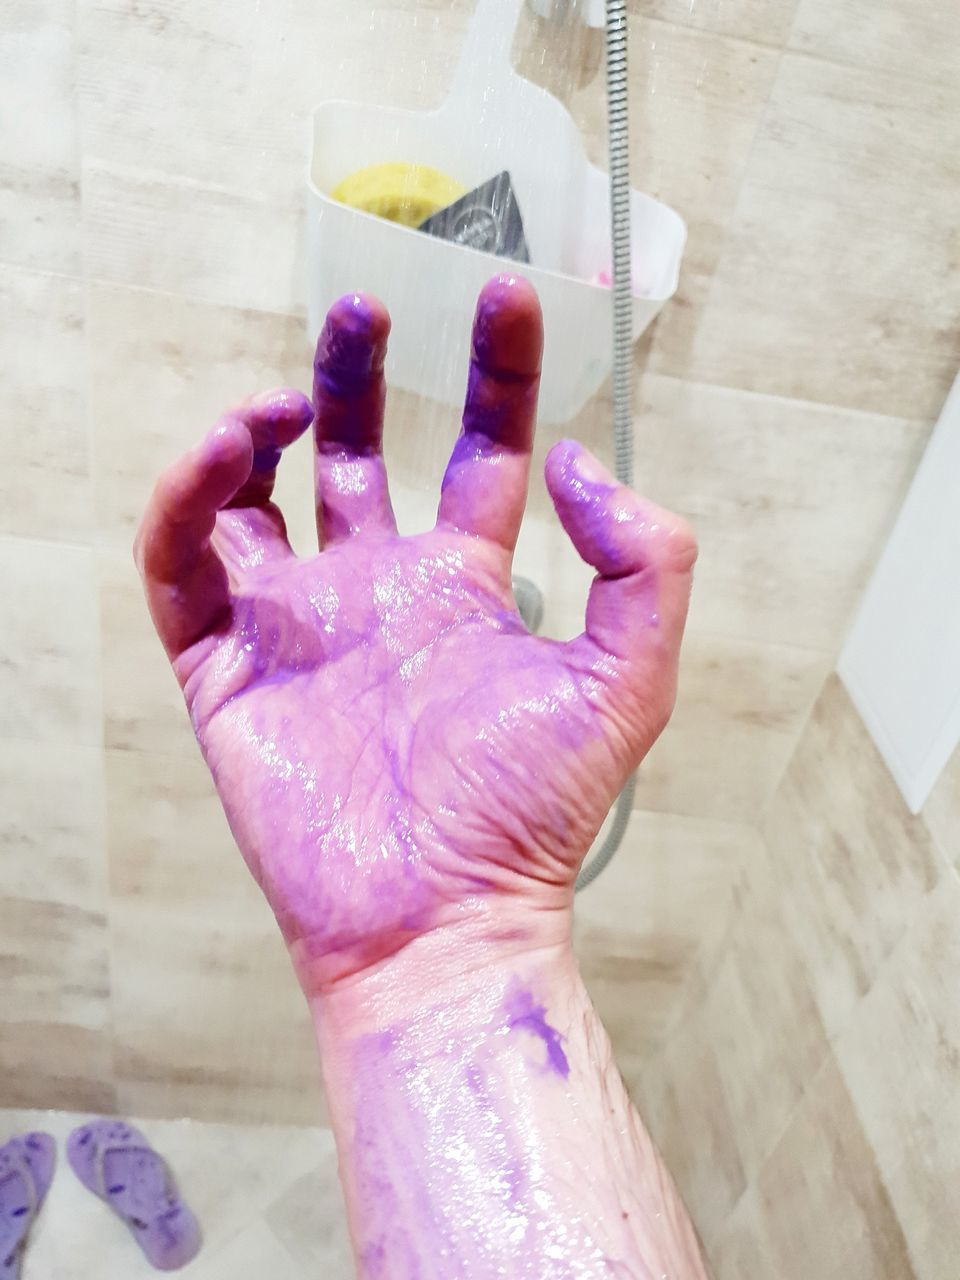 human hand, hand, human body part, real people, one person, indoors, pink color, body part, high angle view, unrecognizable person, lifestyles, finger, human finger, personal perspective, close-up, paint, messy, multi colored, flooring, holi, nail, purple